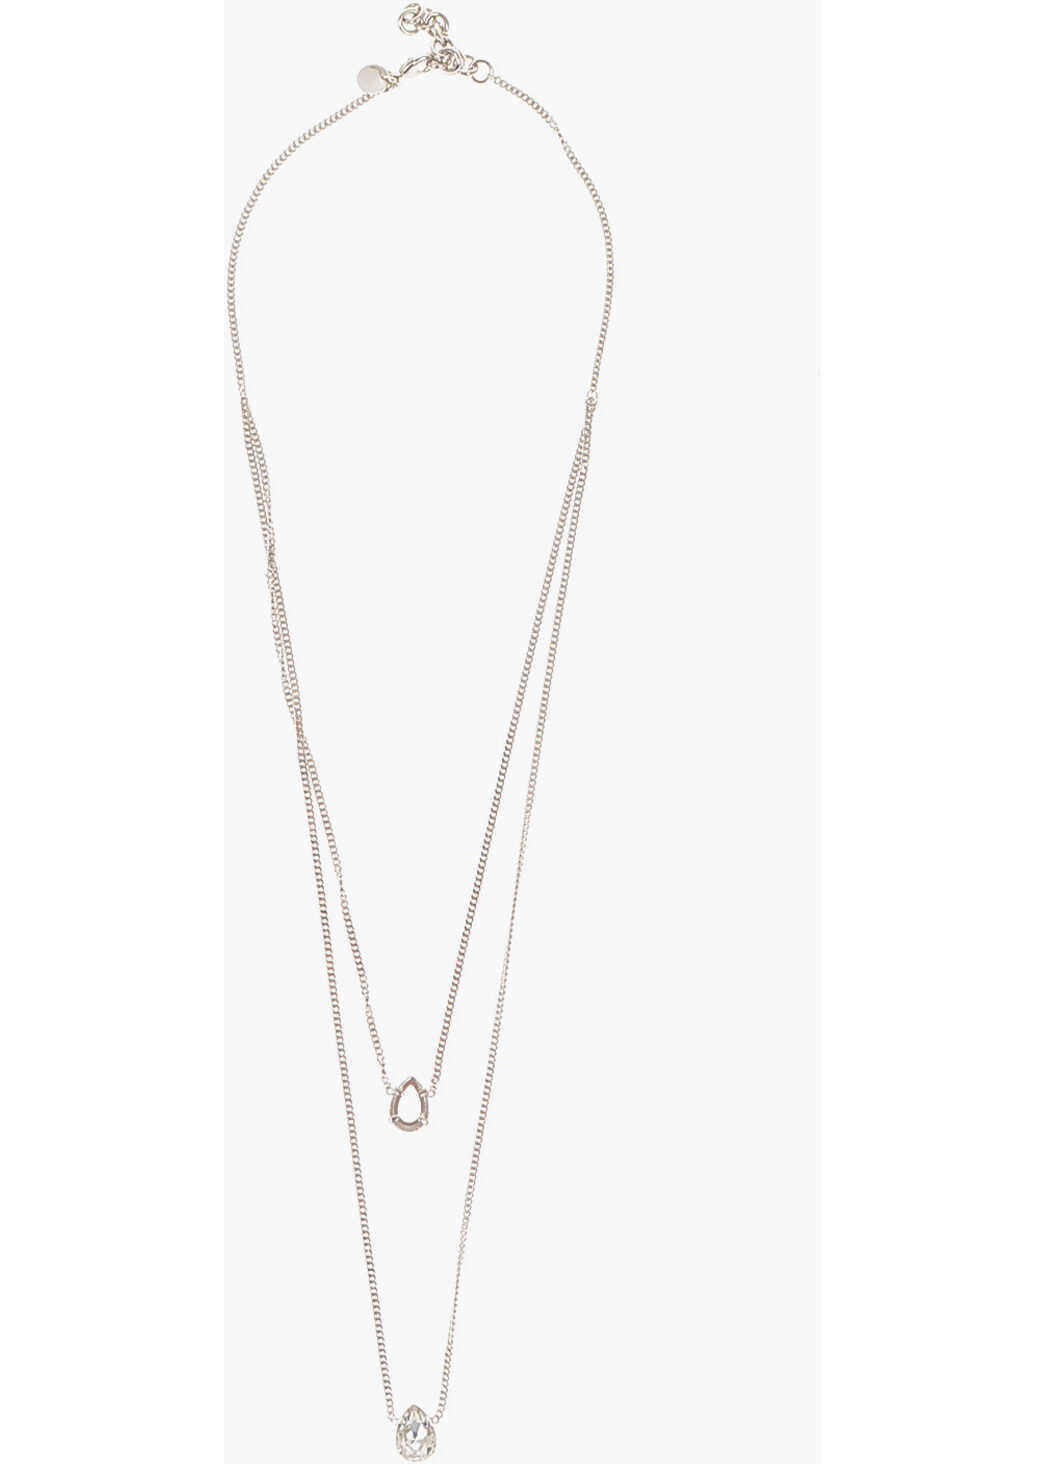 Maison Margiela MM6 DOUBLE CHAIN NECKLACE WITH FACETED CRYSTALS SILVER